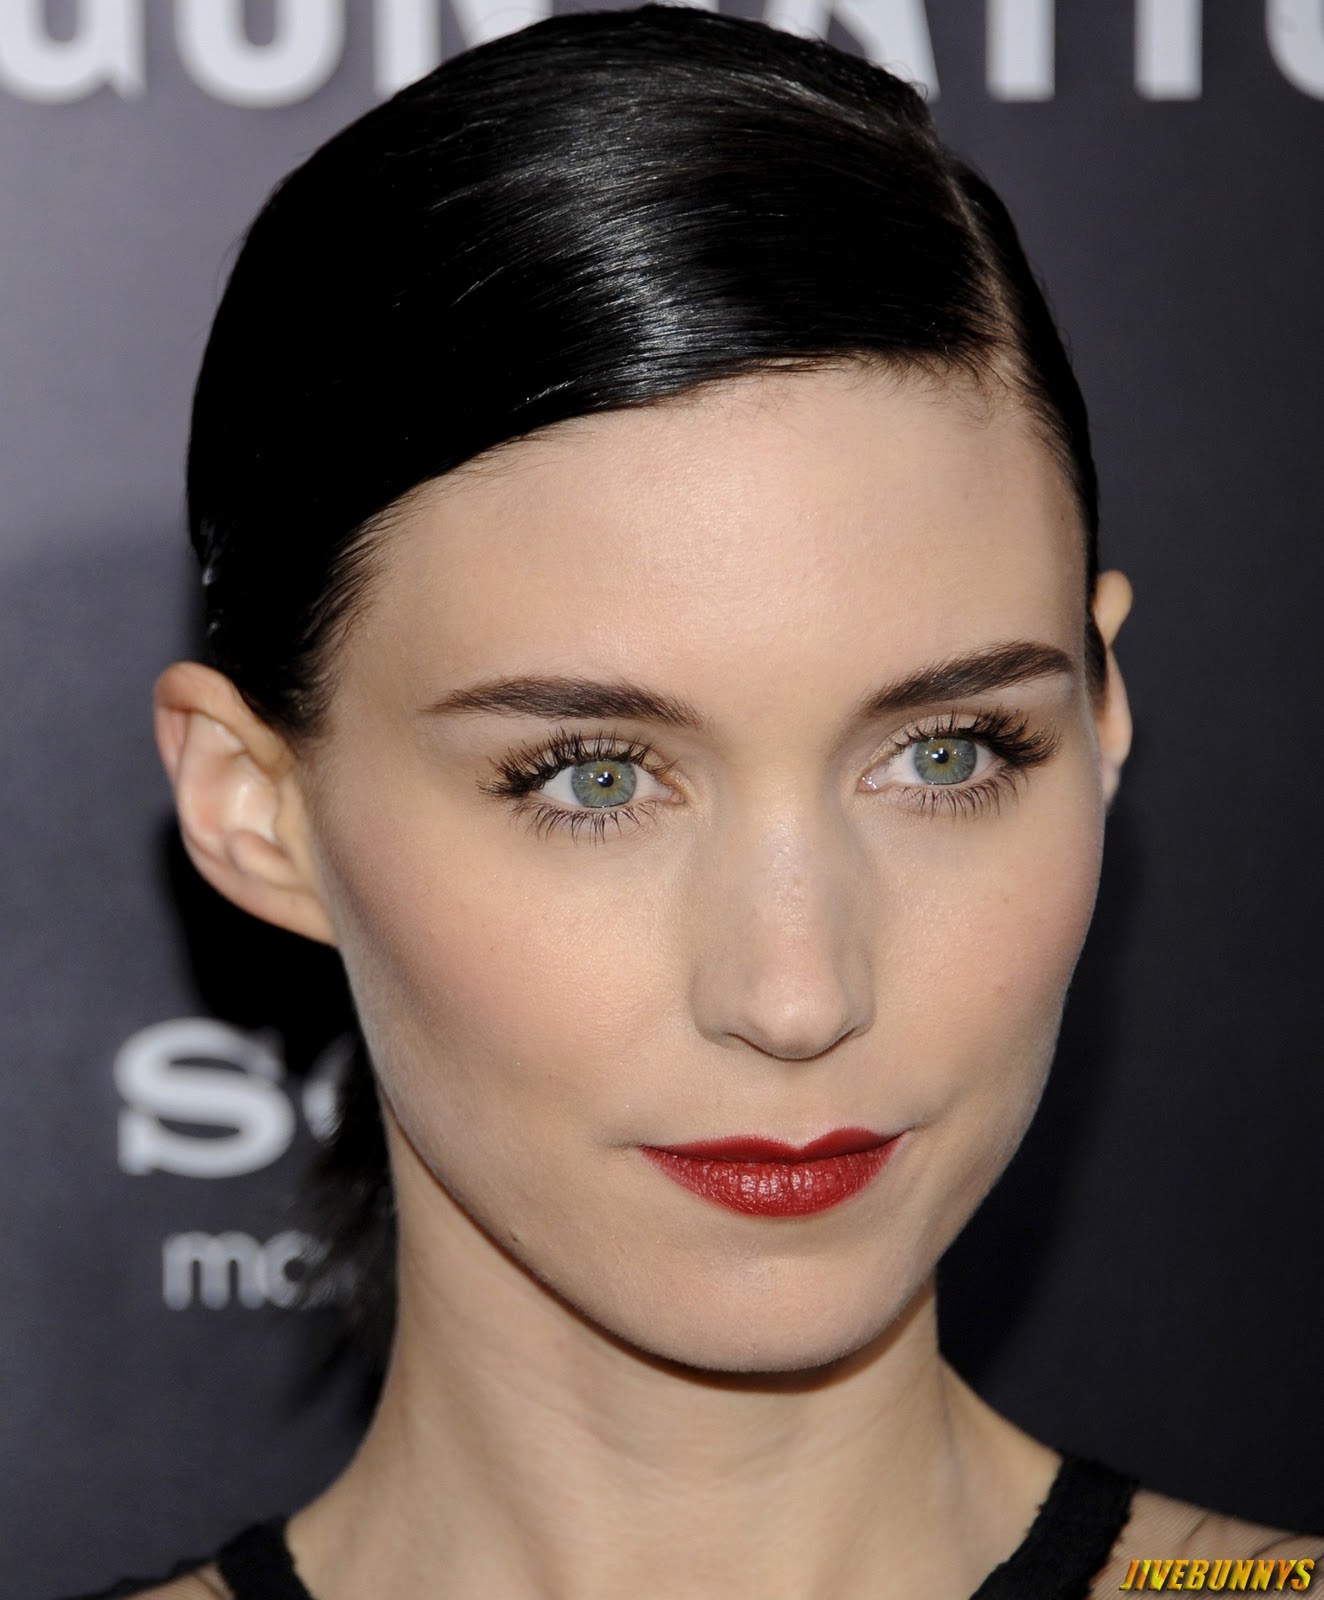 Previous Gallery Of Rooney Mara Next Gallery Of Rooney Mara